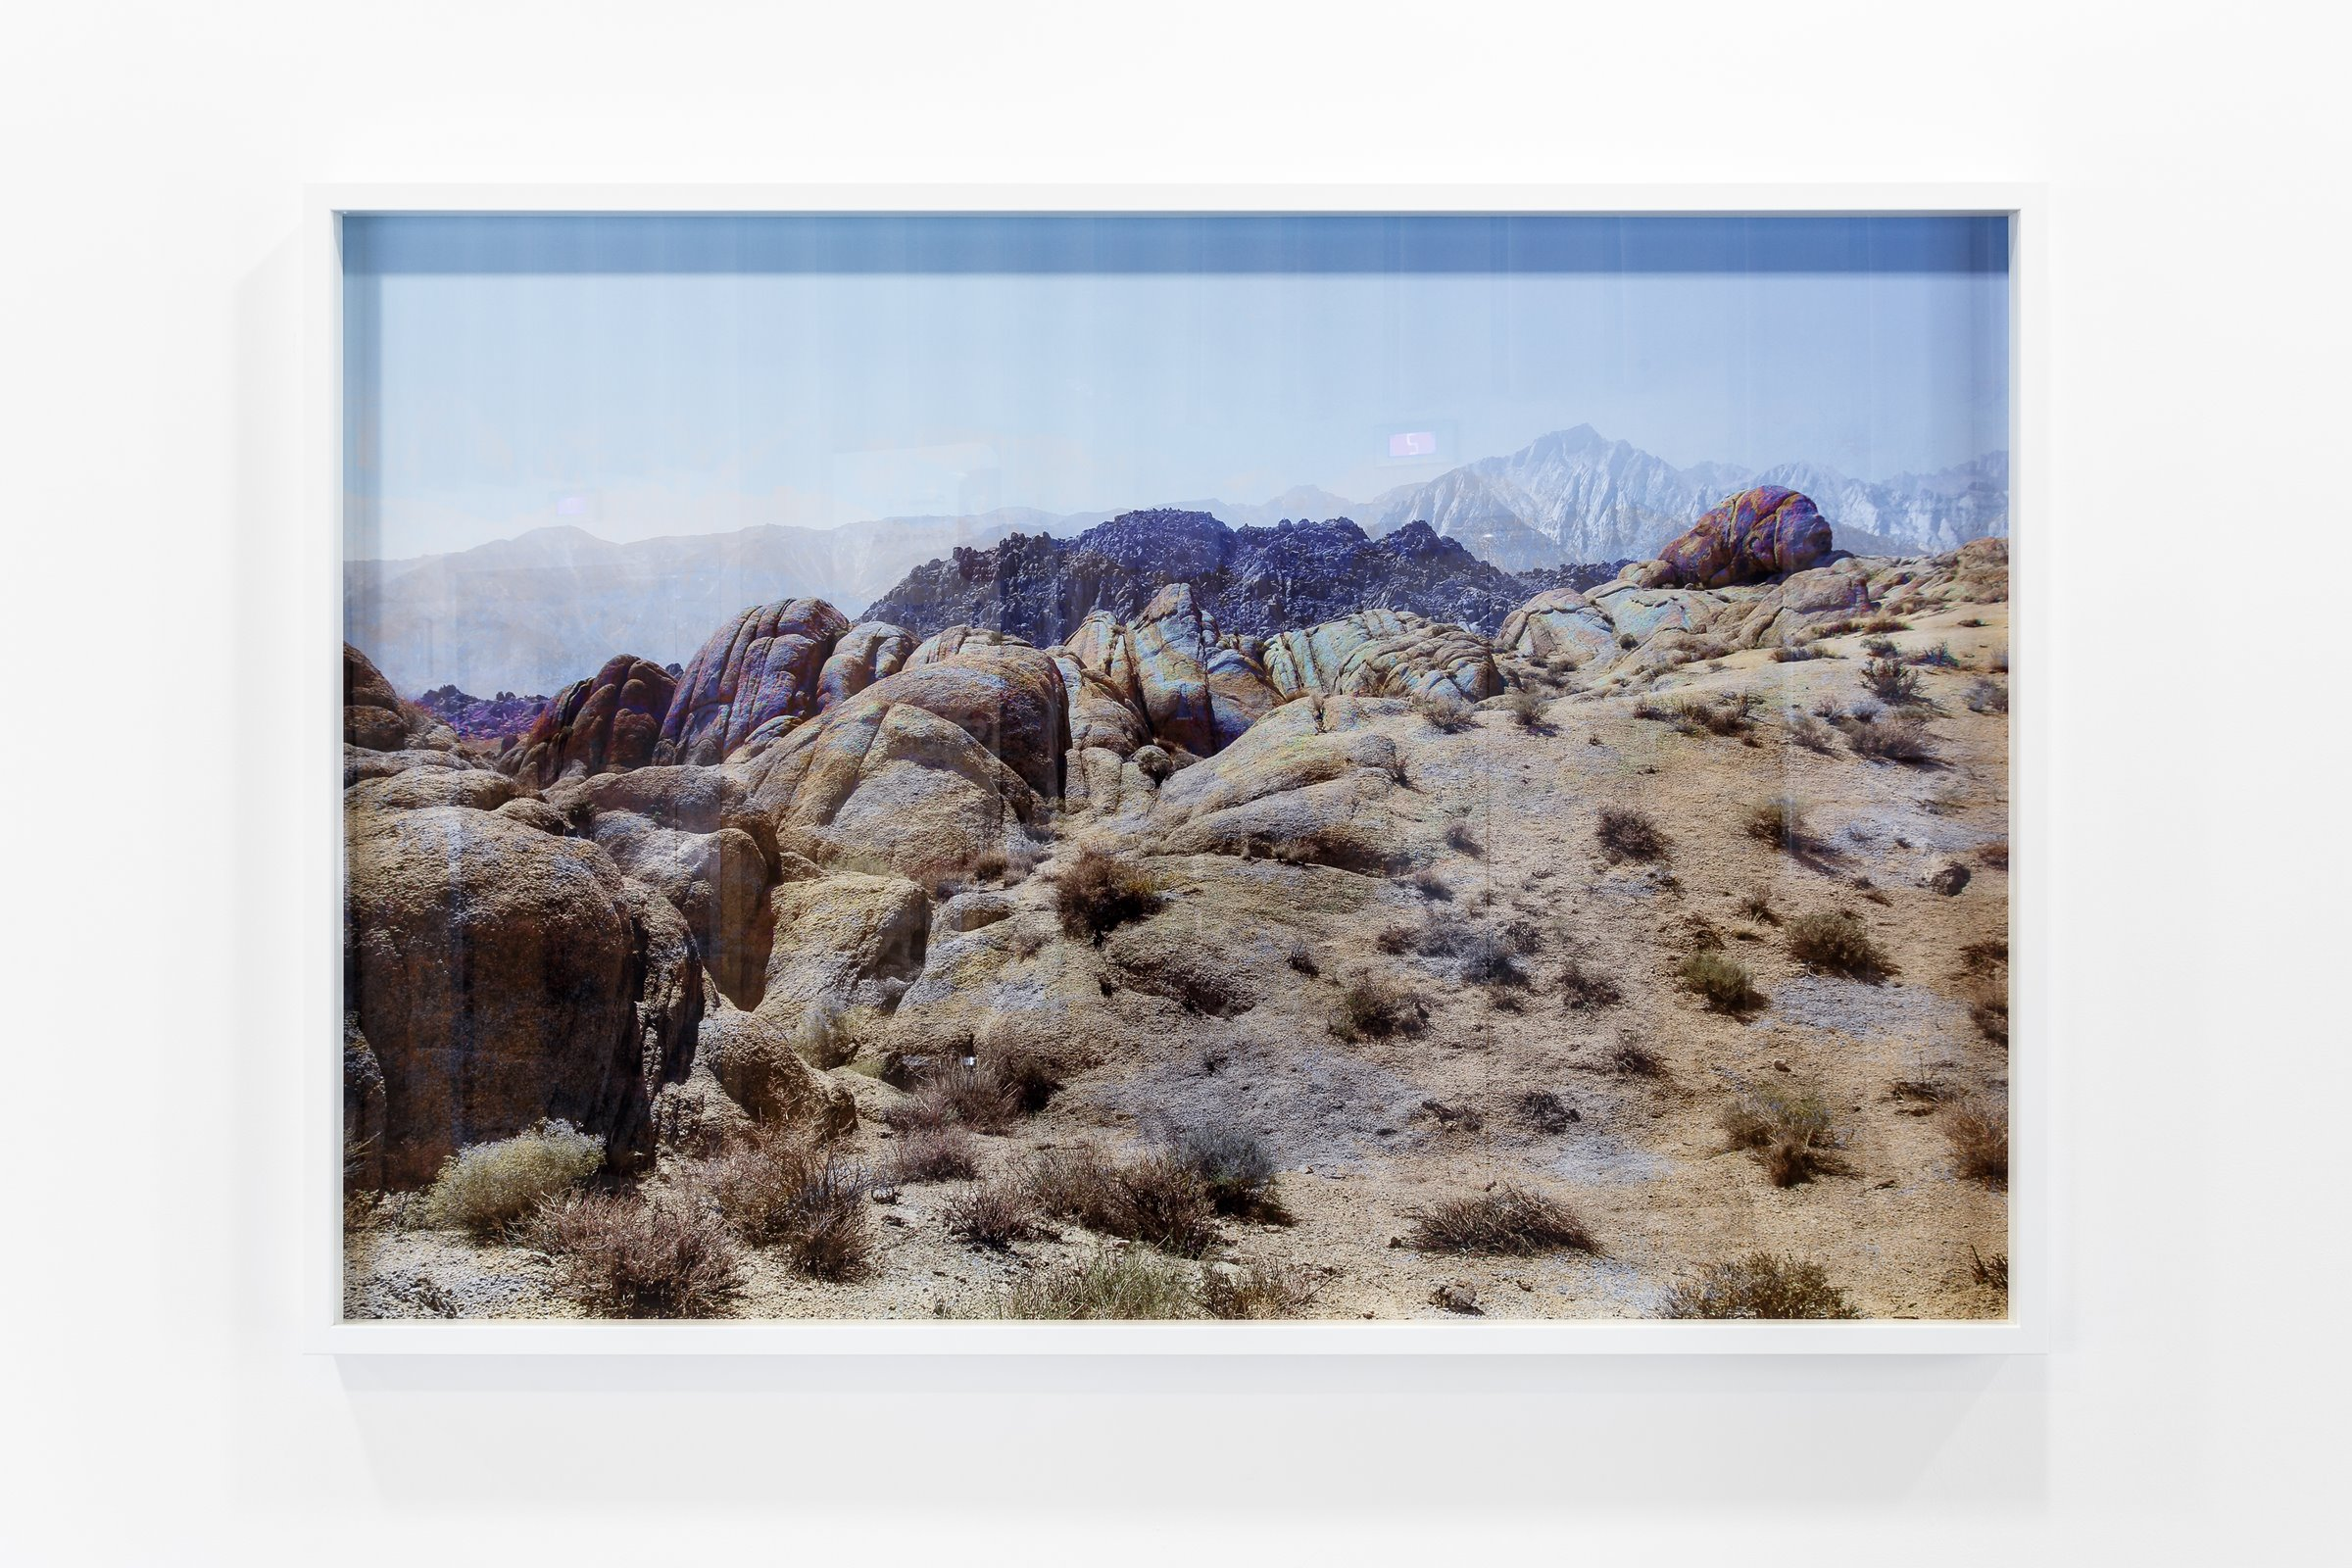 Psychedelic Western #3 (2015) (Installation view)  Psychedelic Western #1 – #14 (2015) Digital photographic series  Framed: Edition: 1/3 101.6cm x 152.4cm  Wall Based: Dimensions Variable  Exhibited at:  Chiara Williams Contemporary Art, London Art Fair 17th to 22nd January, 2017.  HOME, Manchester, 27th January – 2nd April 2017.  Airspace Gallery 5th May to 3rd June, 2017.